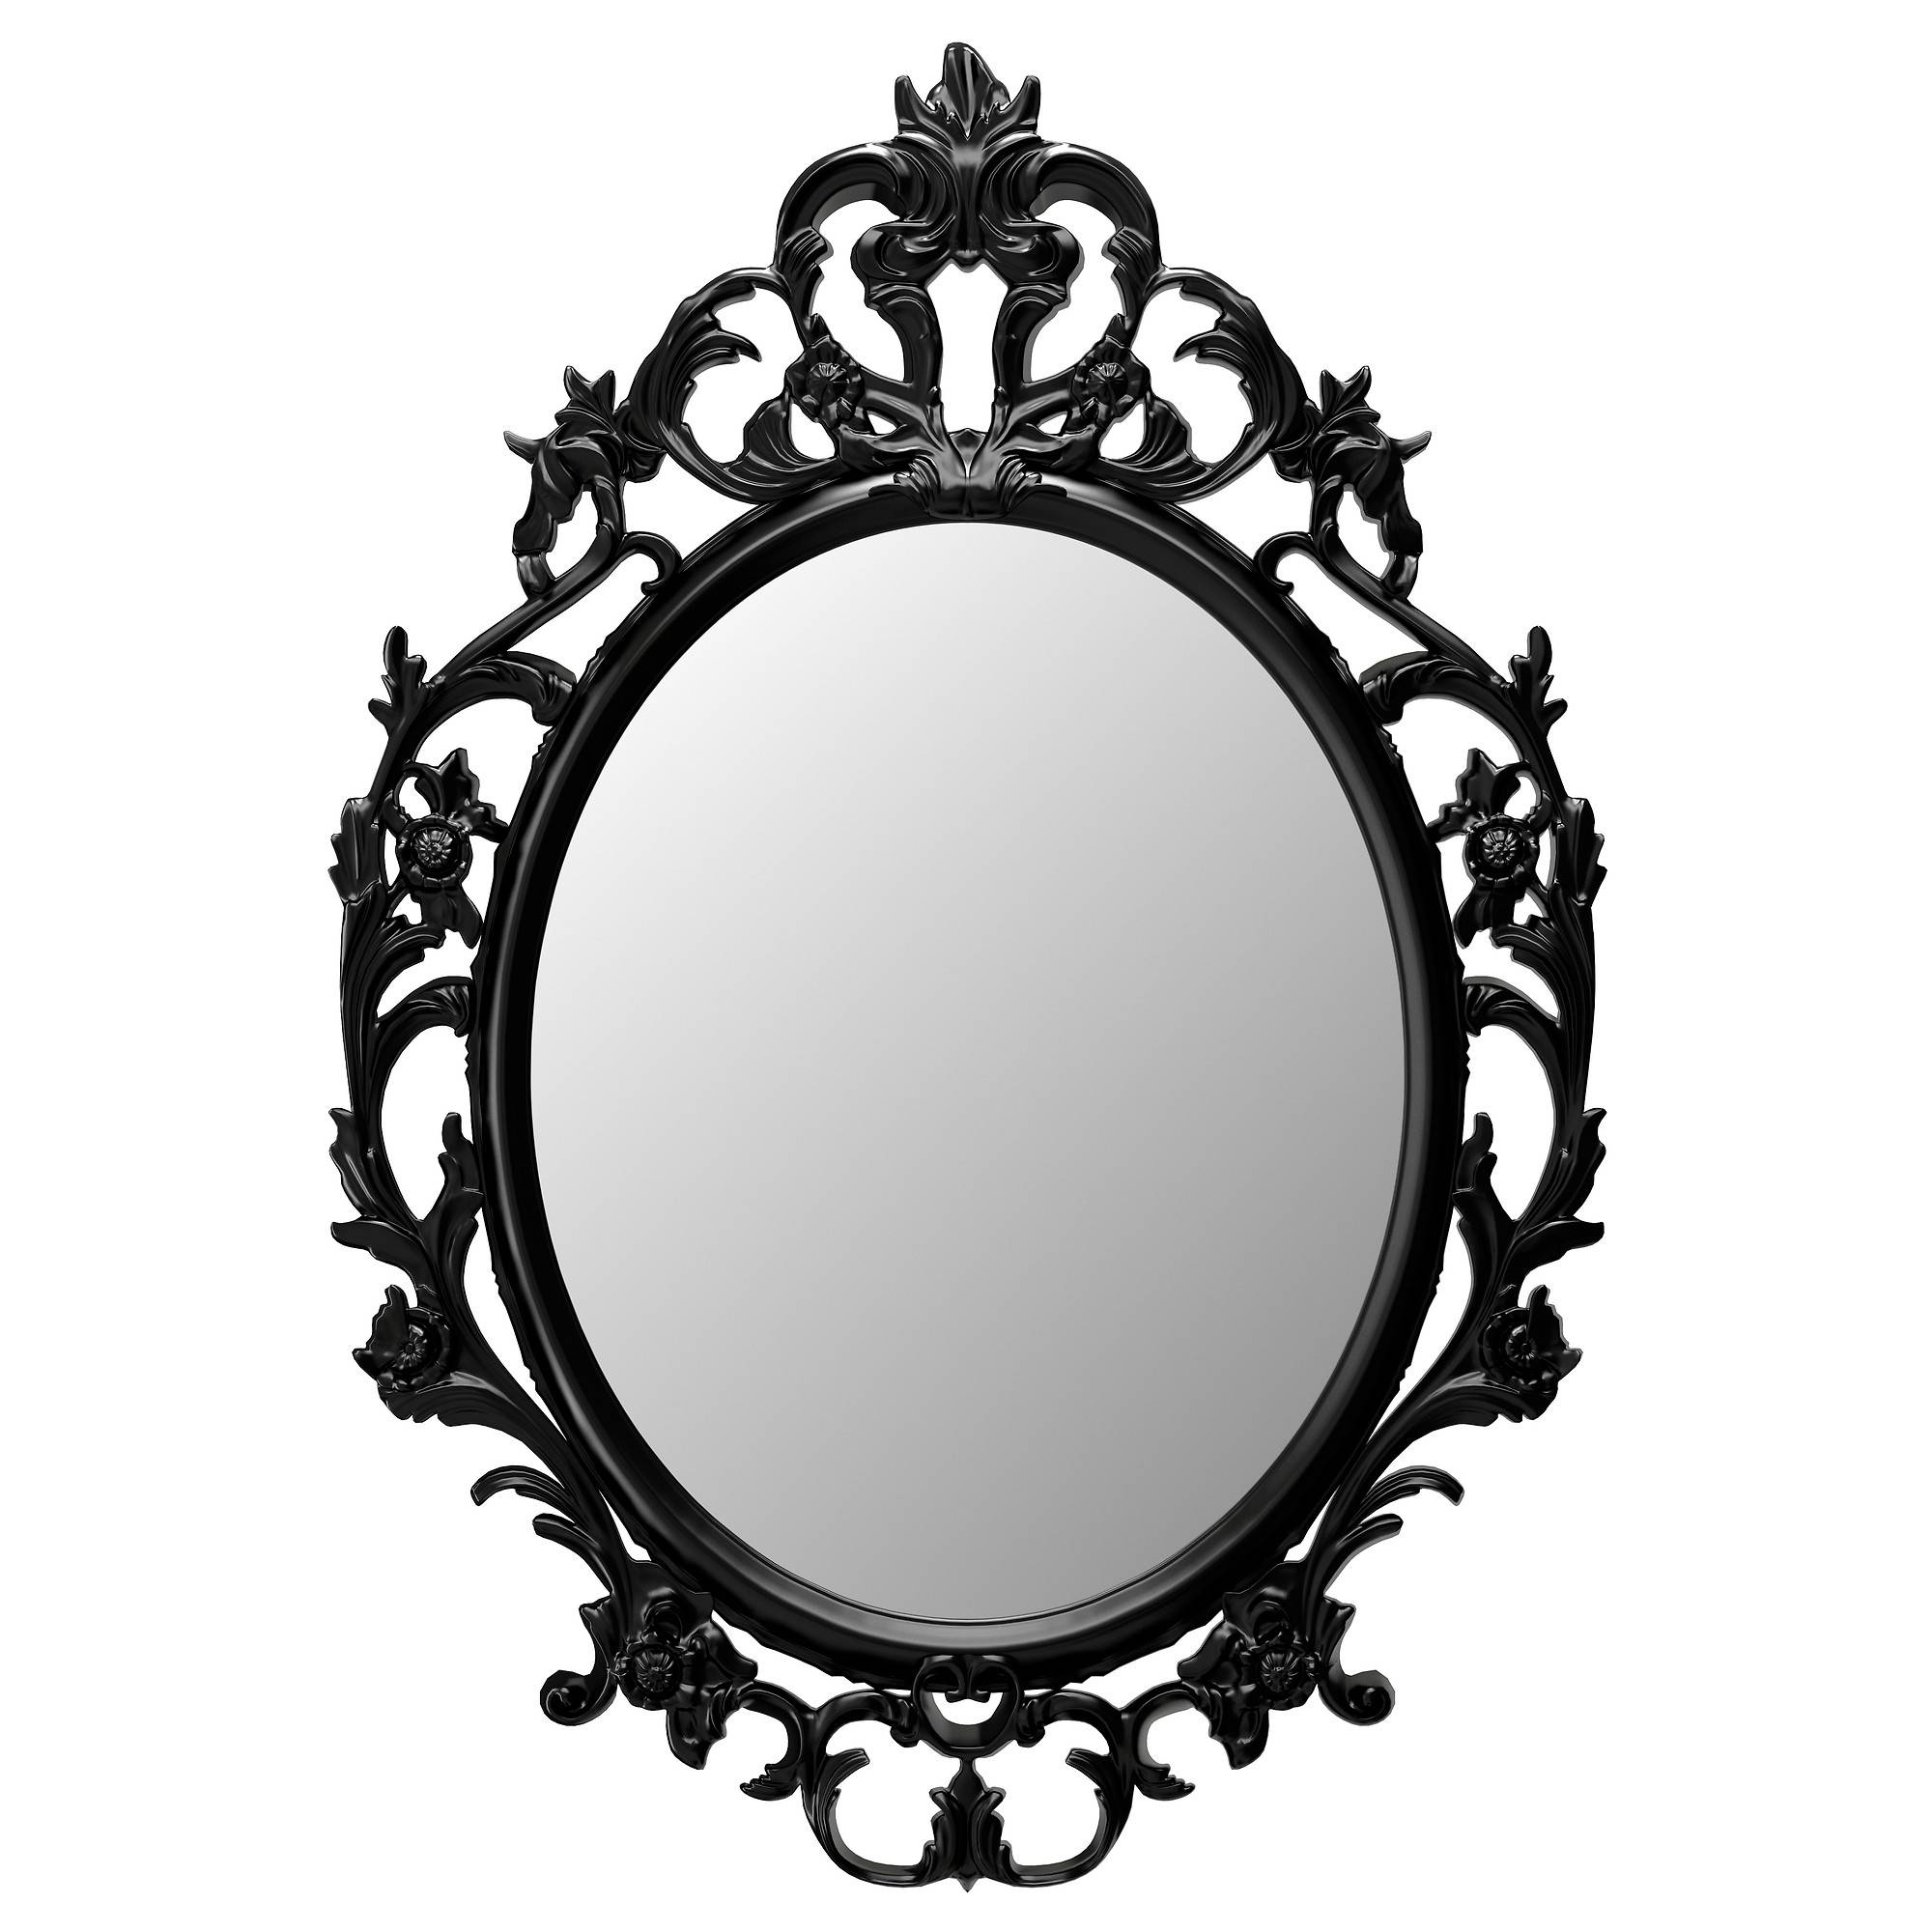 Wall Mirrors – Ikea With Regard To Cheap Ornate Mirrors (View 15 of 15)